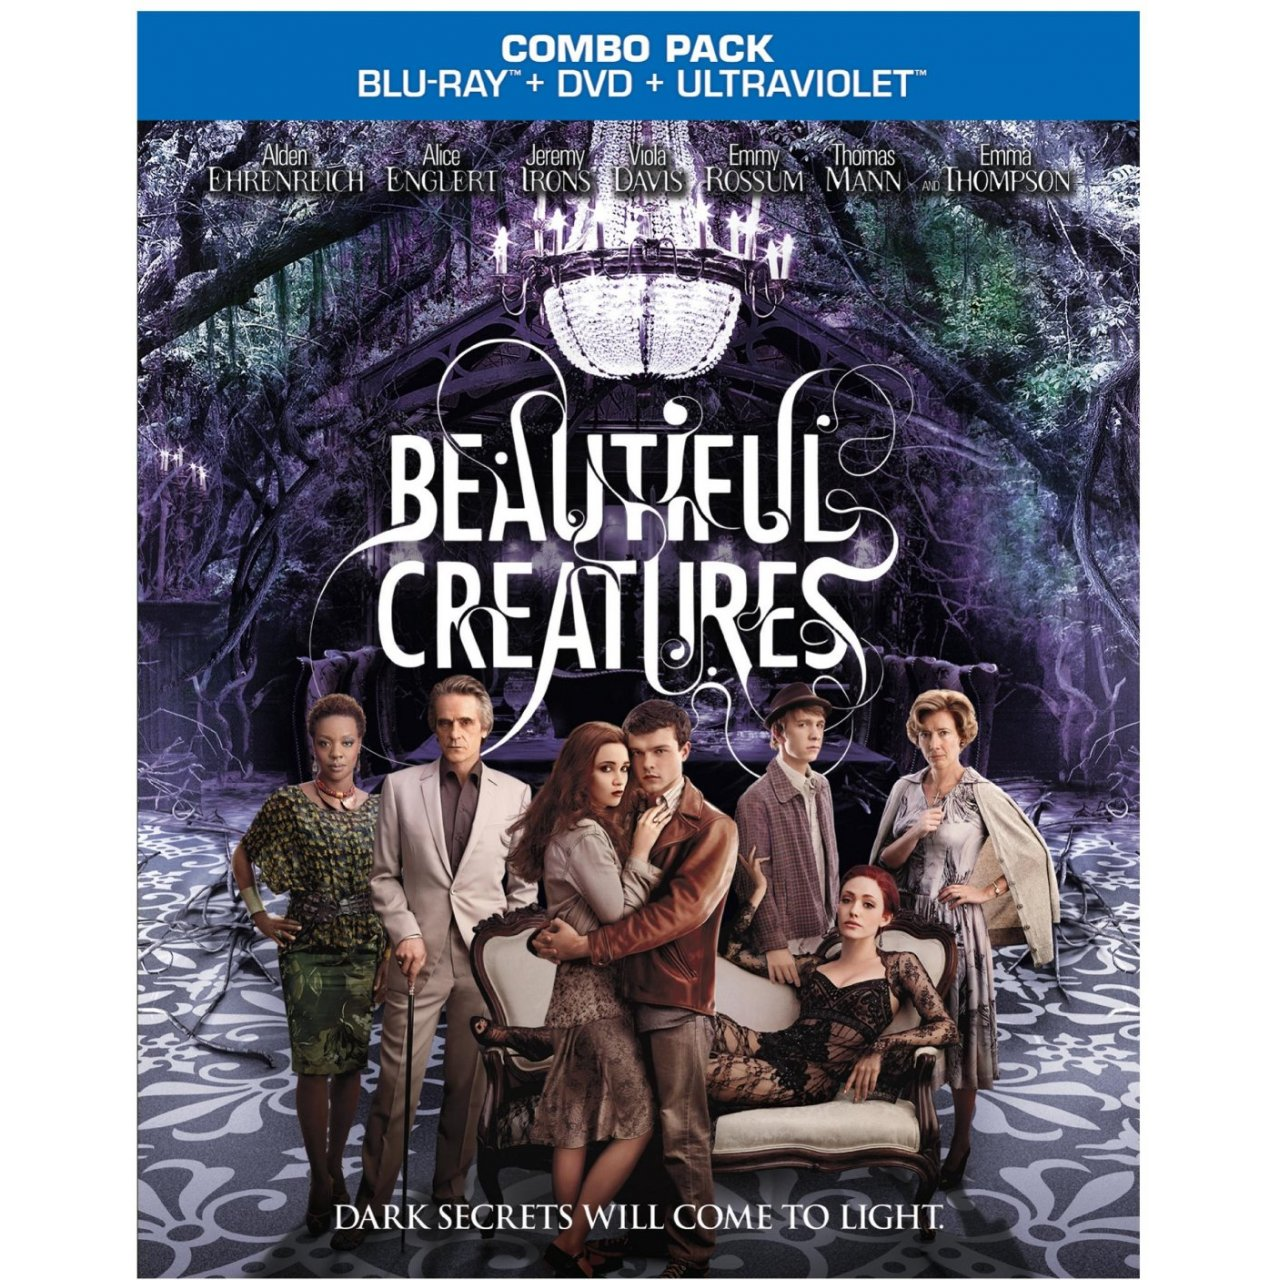 Purchase Beautiful Creatures in Bluray and DVD HERE